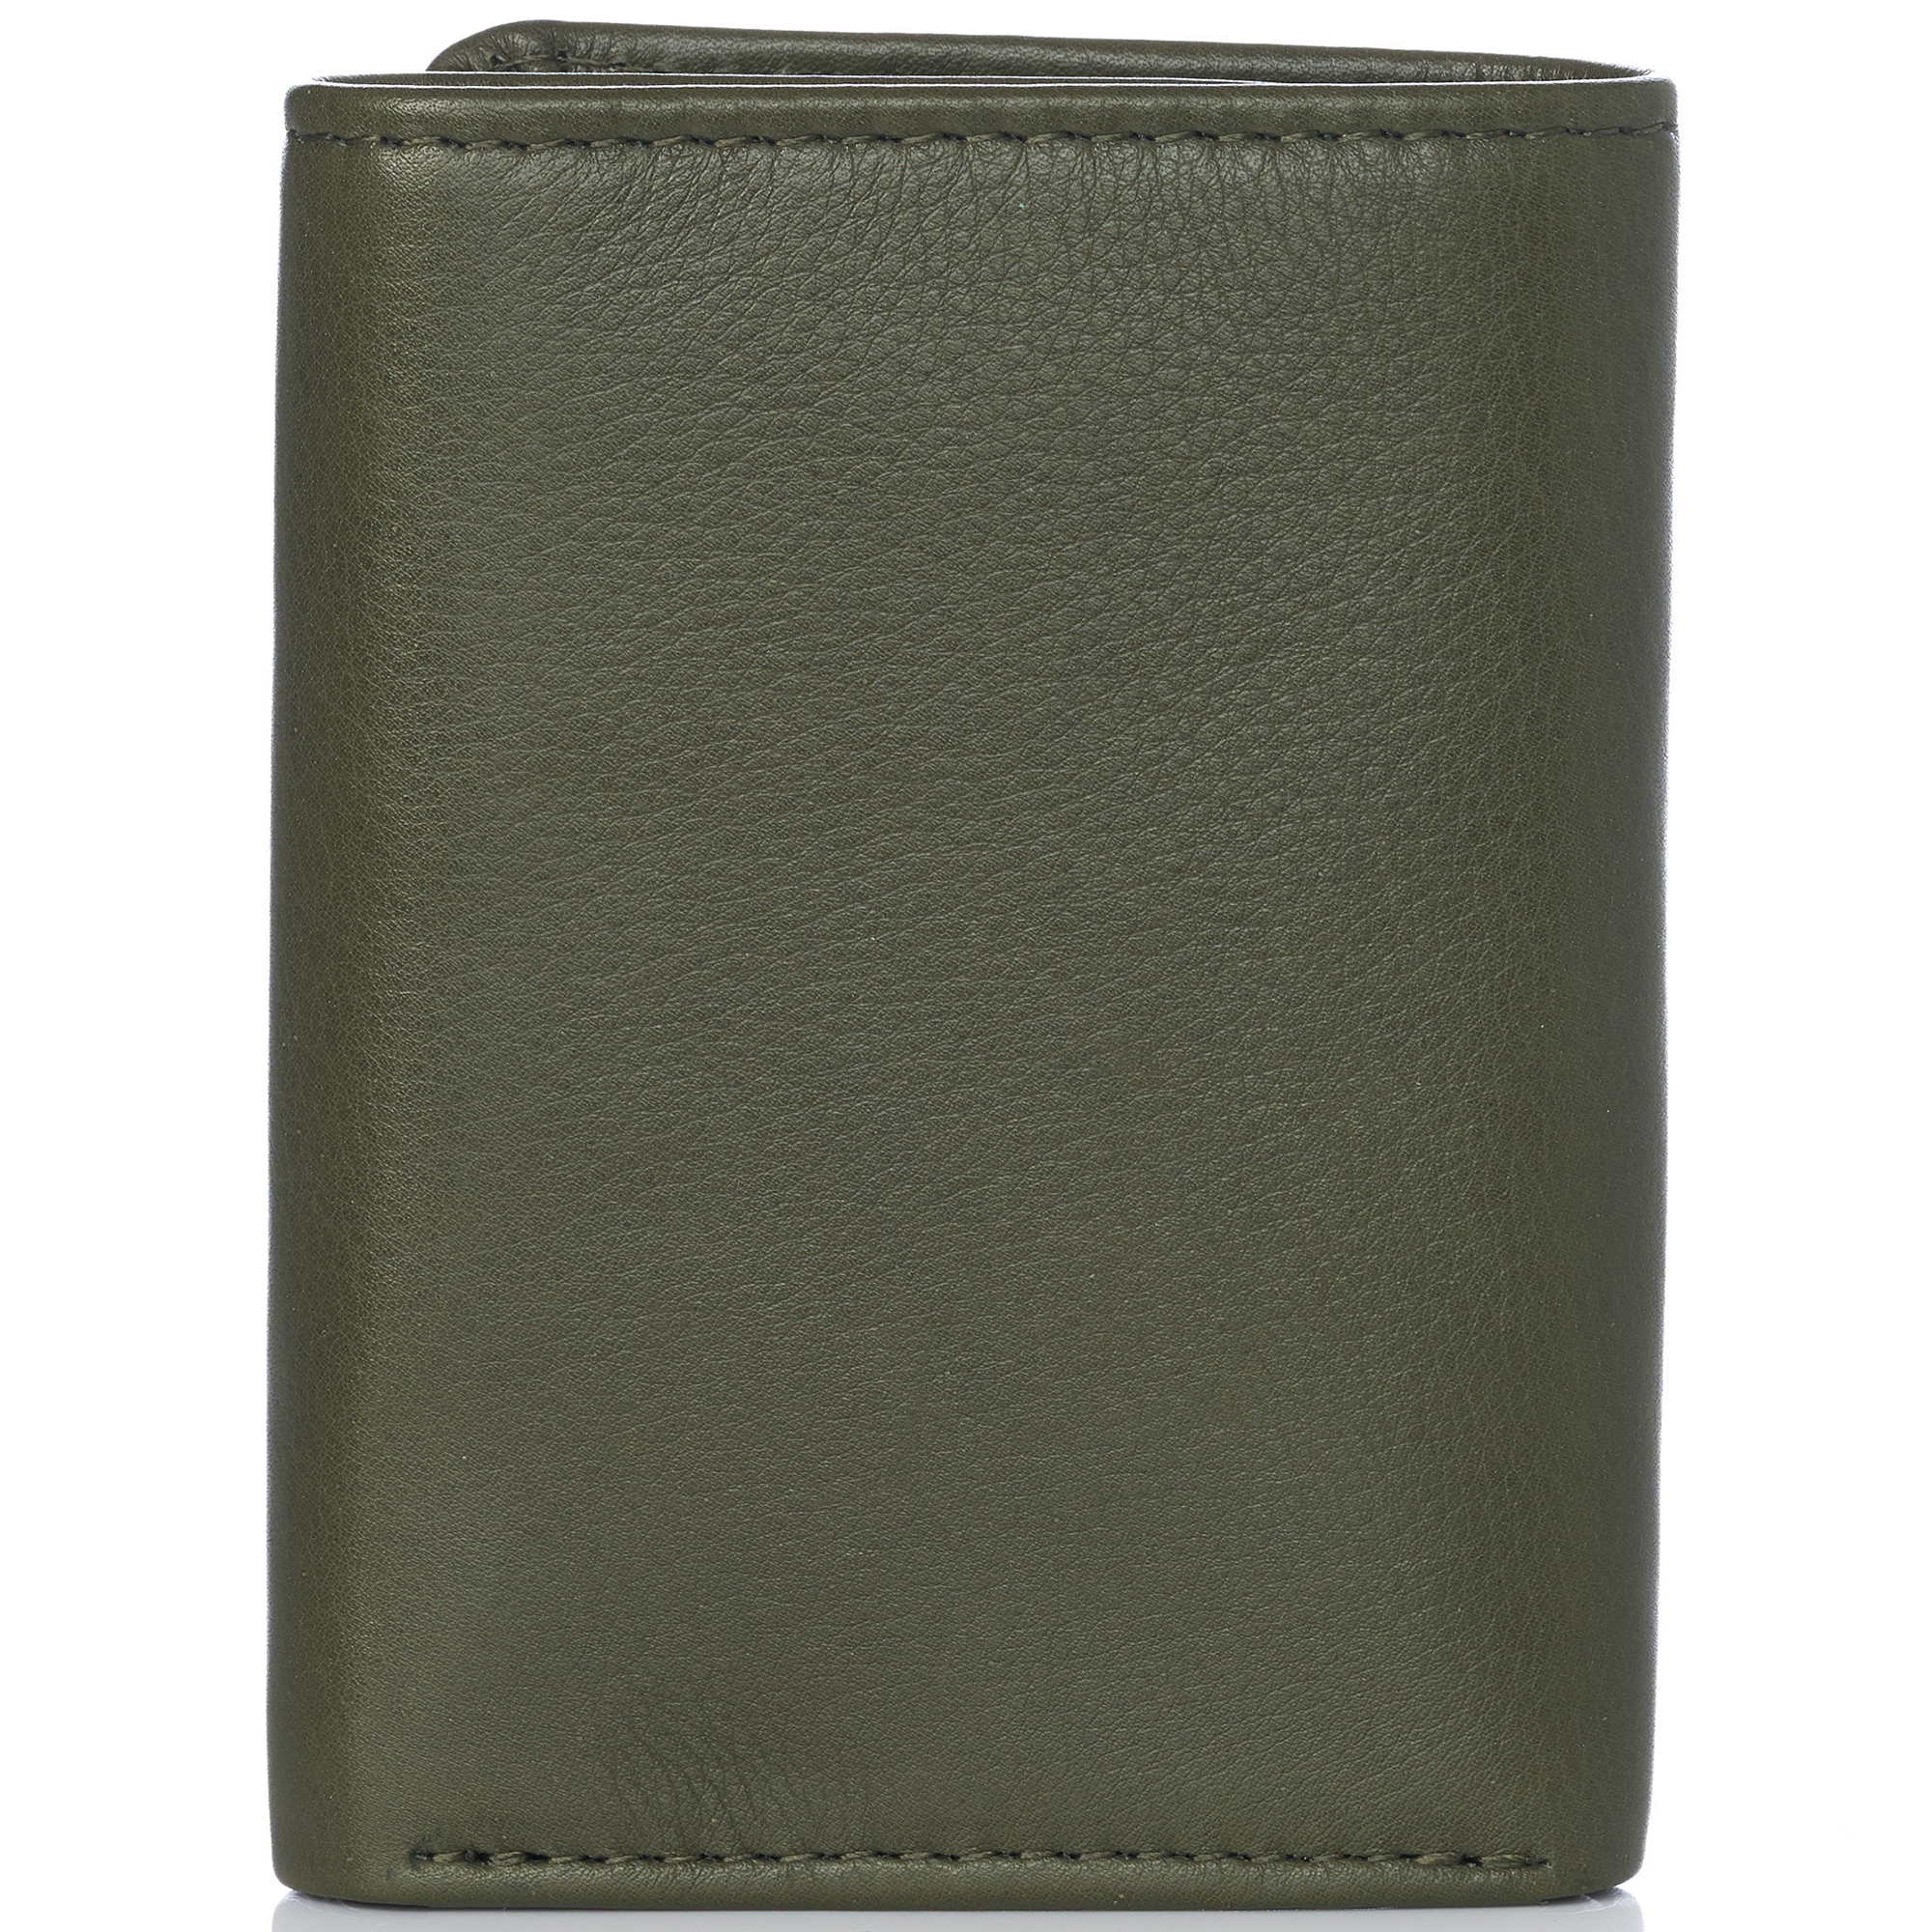 Alpine-Swiss-RFID-Mens-Wallet-Deluxe-Capacity-Trifold-With-Divided-Bill-Section thumbnail 111